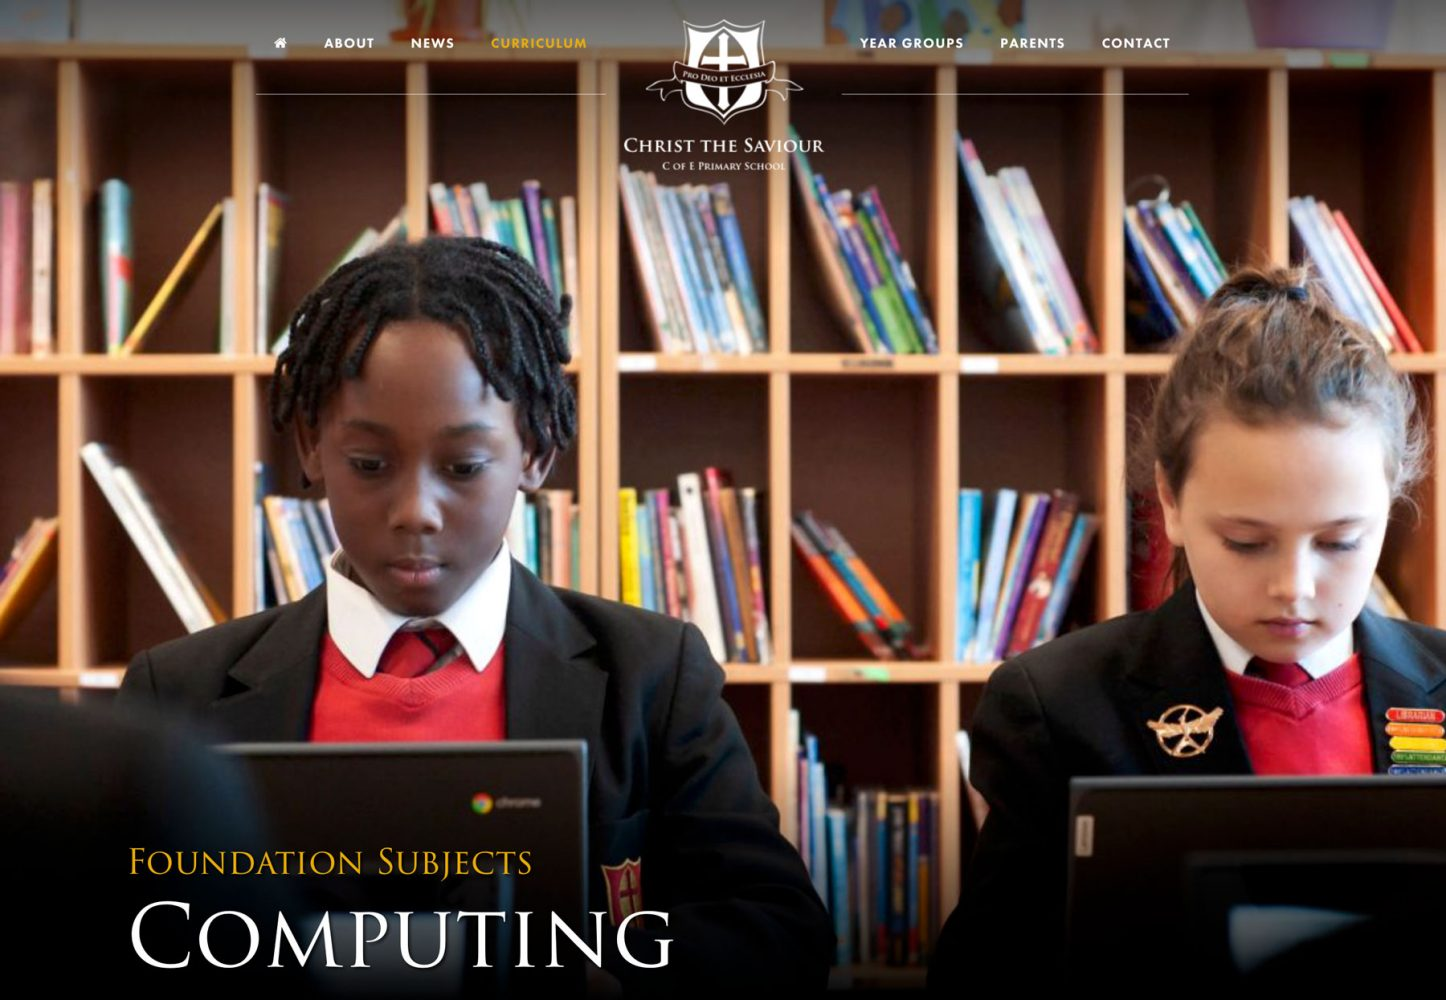 Screenshot of computing page of Christ The Saviour school website